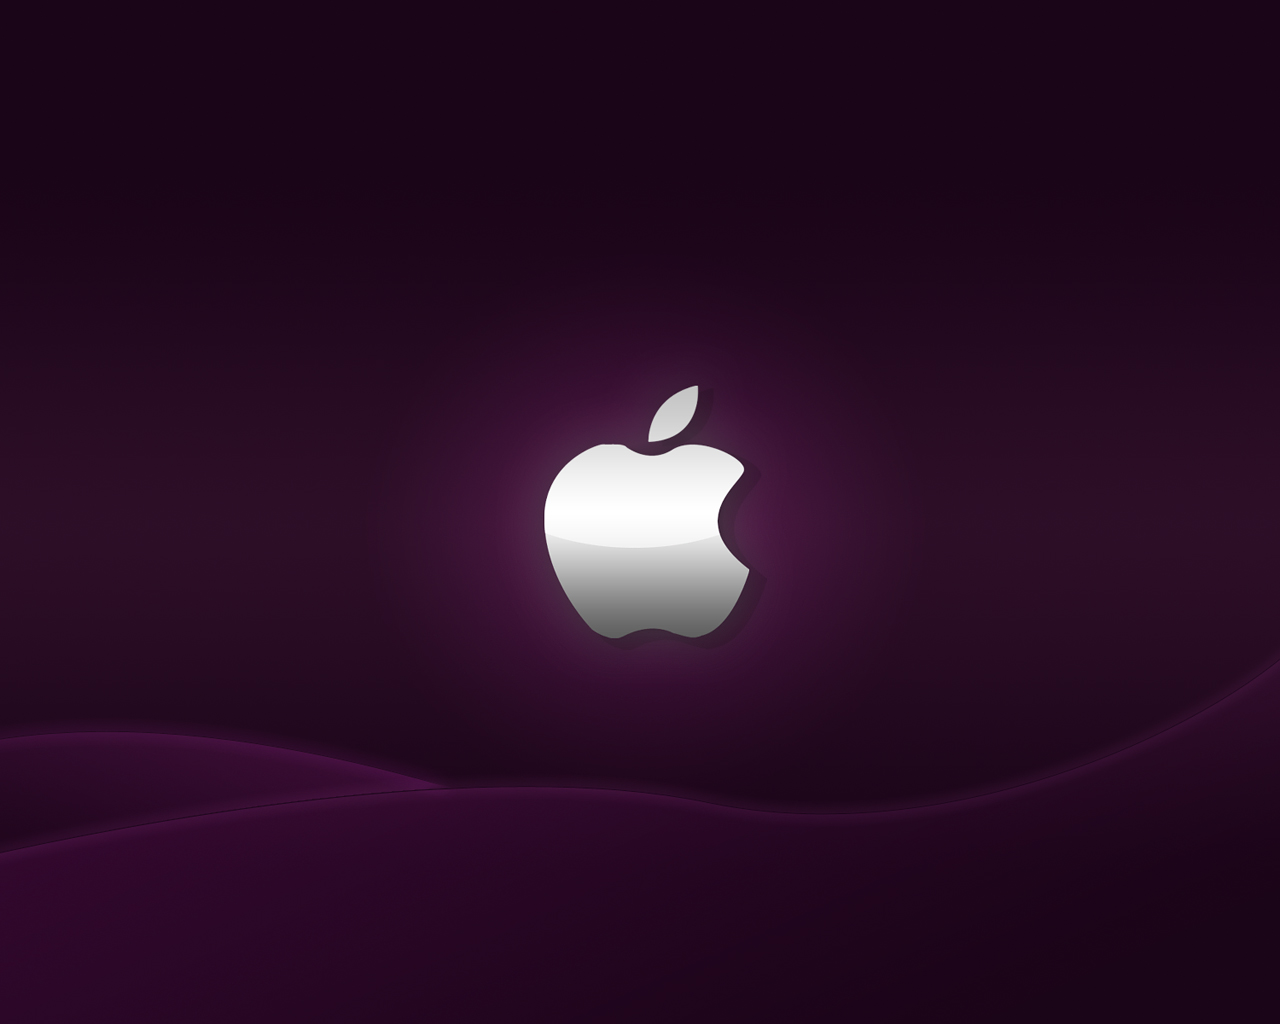 APPLE LOGO WALLPAPERS ~ HD WALLPAPERS